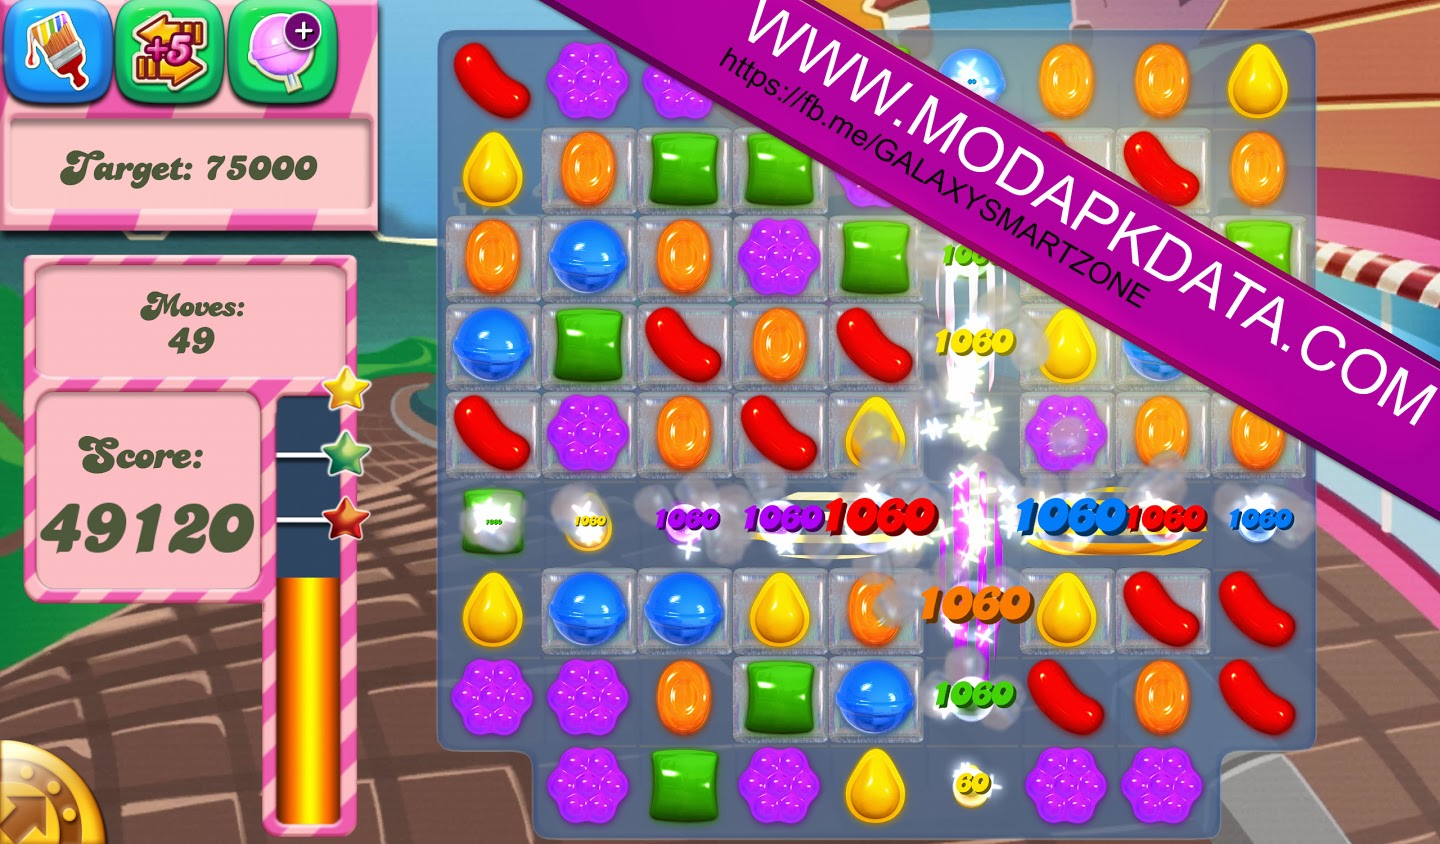 Candy crush saga v1.19.0 mod apk download & review | Download Latest